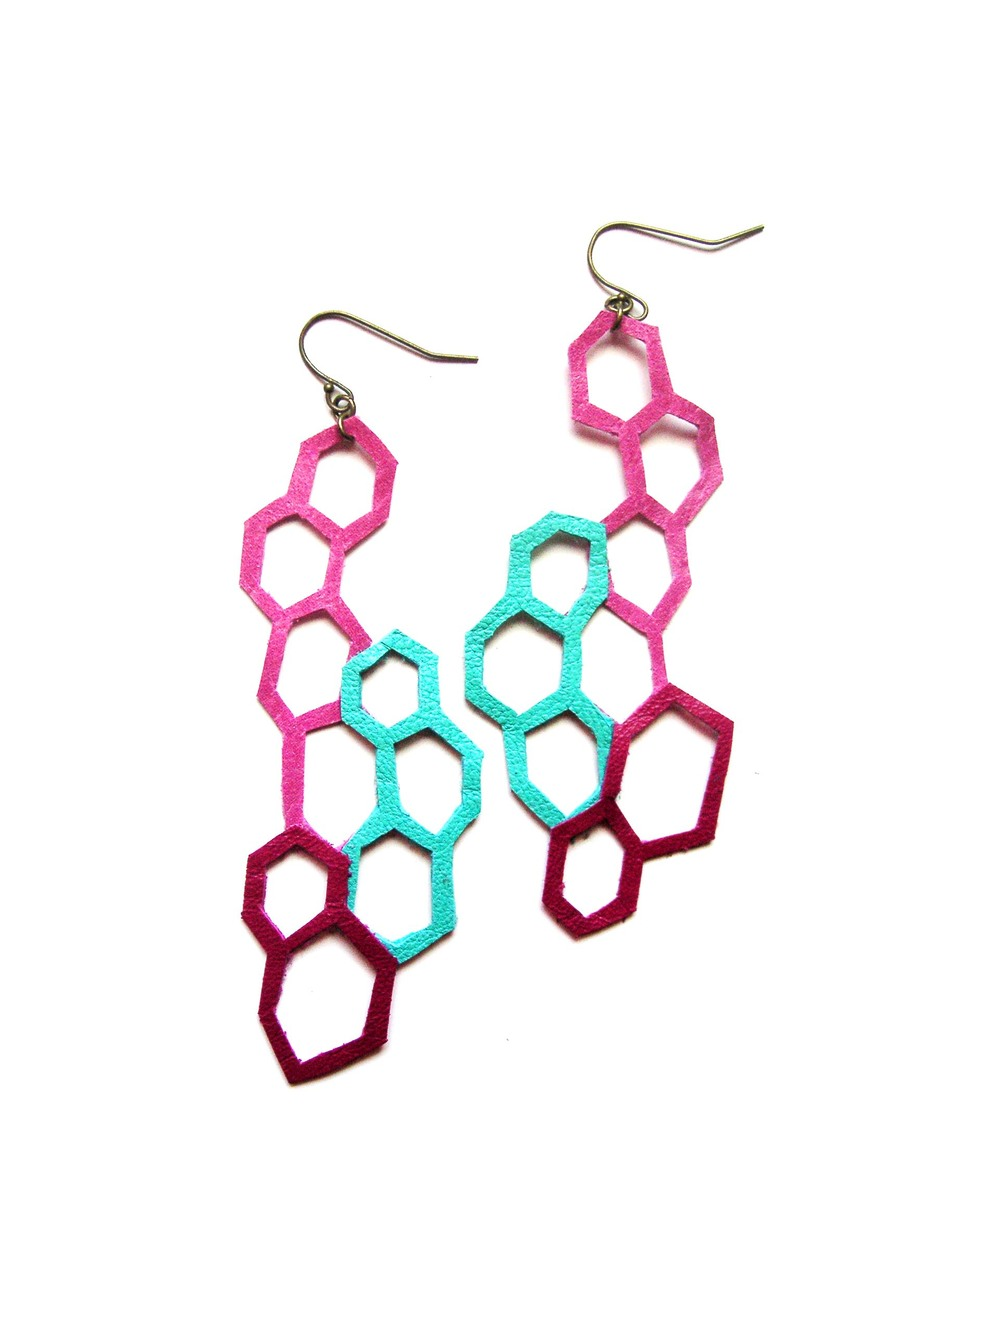 Geometric Leather Earrings Leather Hexagons.jpg